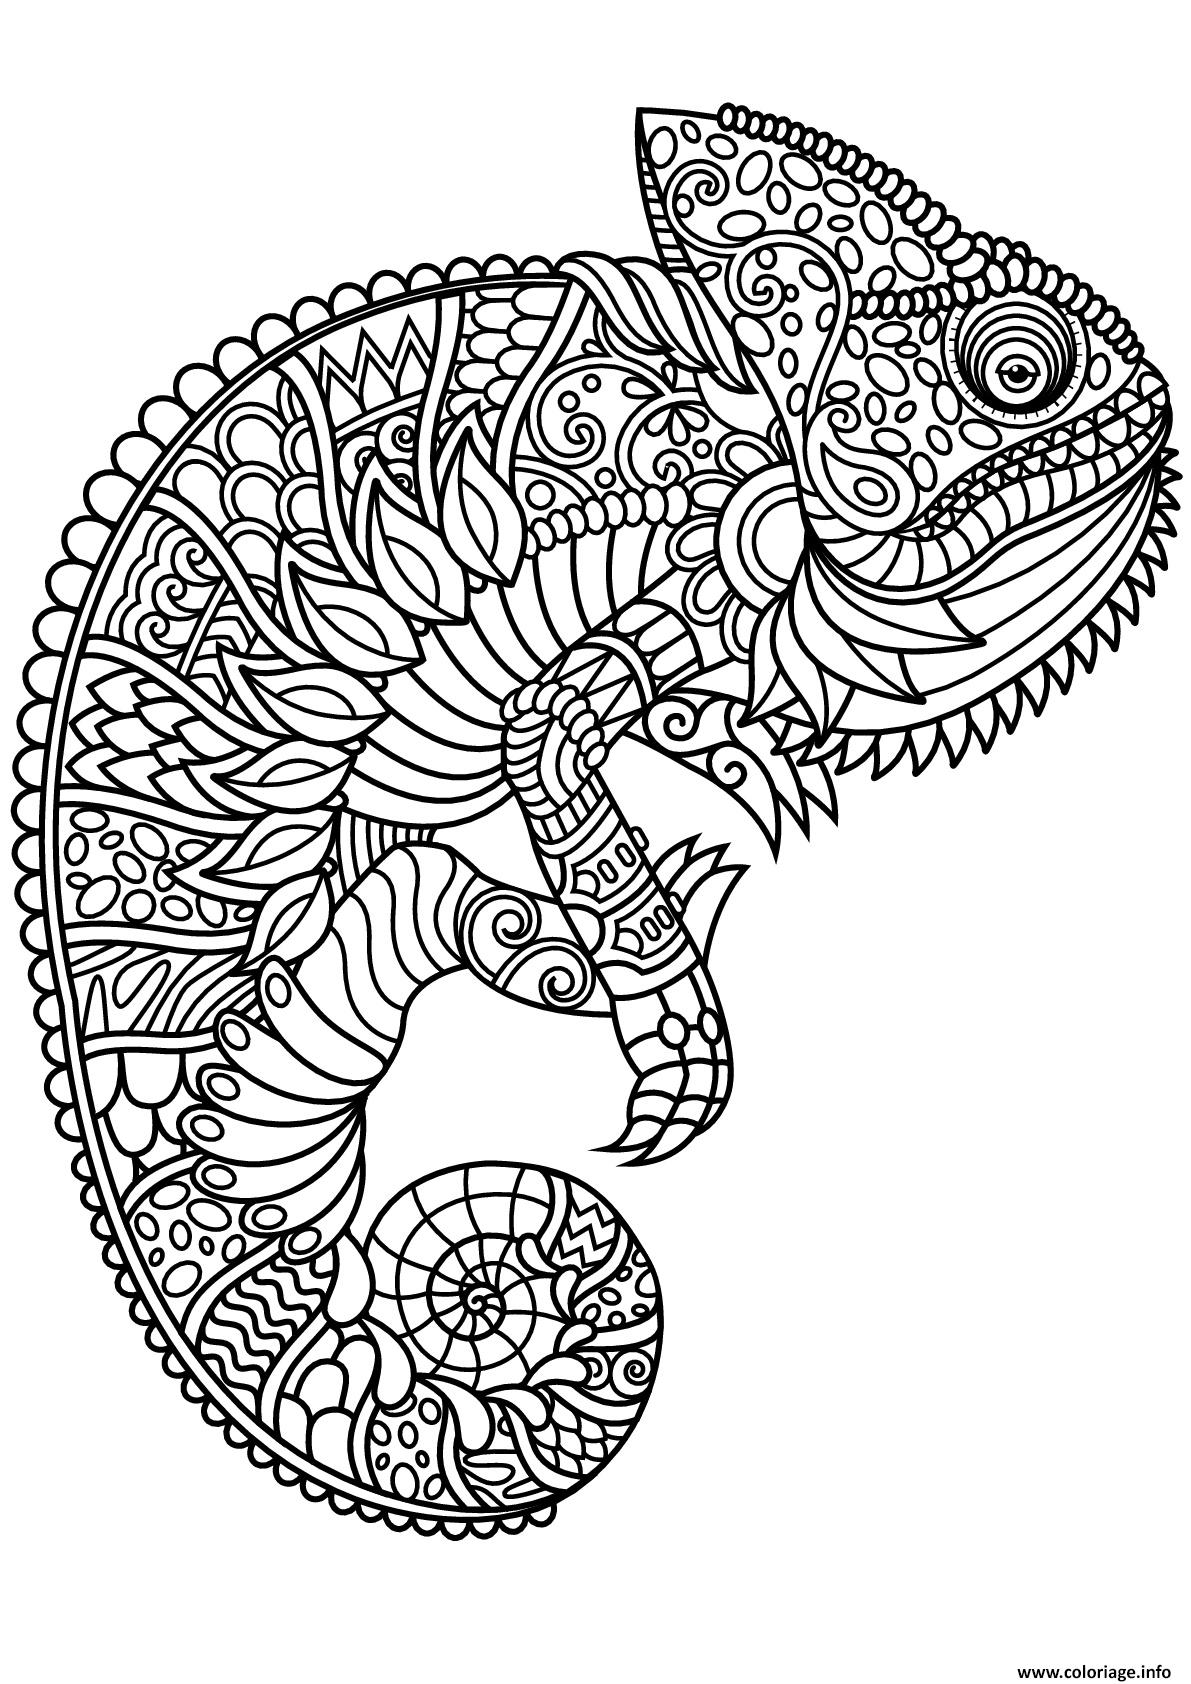 Facile Coloriage Mandala 12 Dans Coloriage Inspiration with Coloriage Mandala